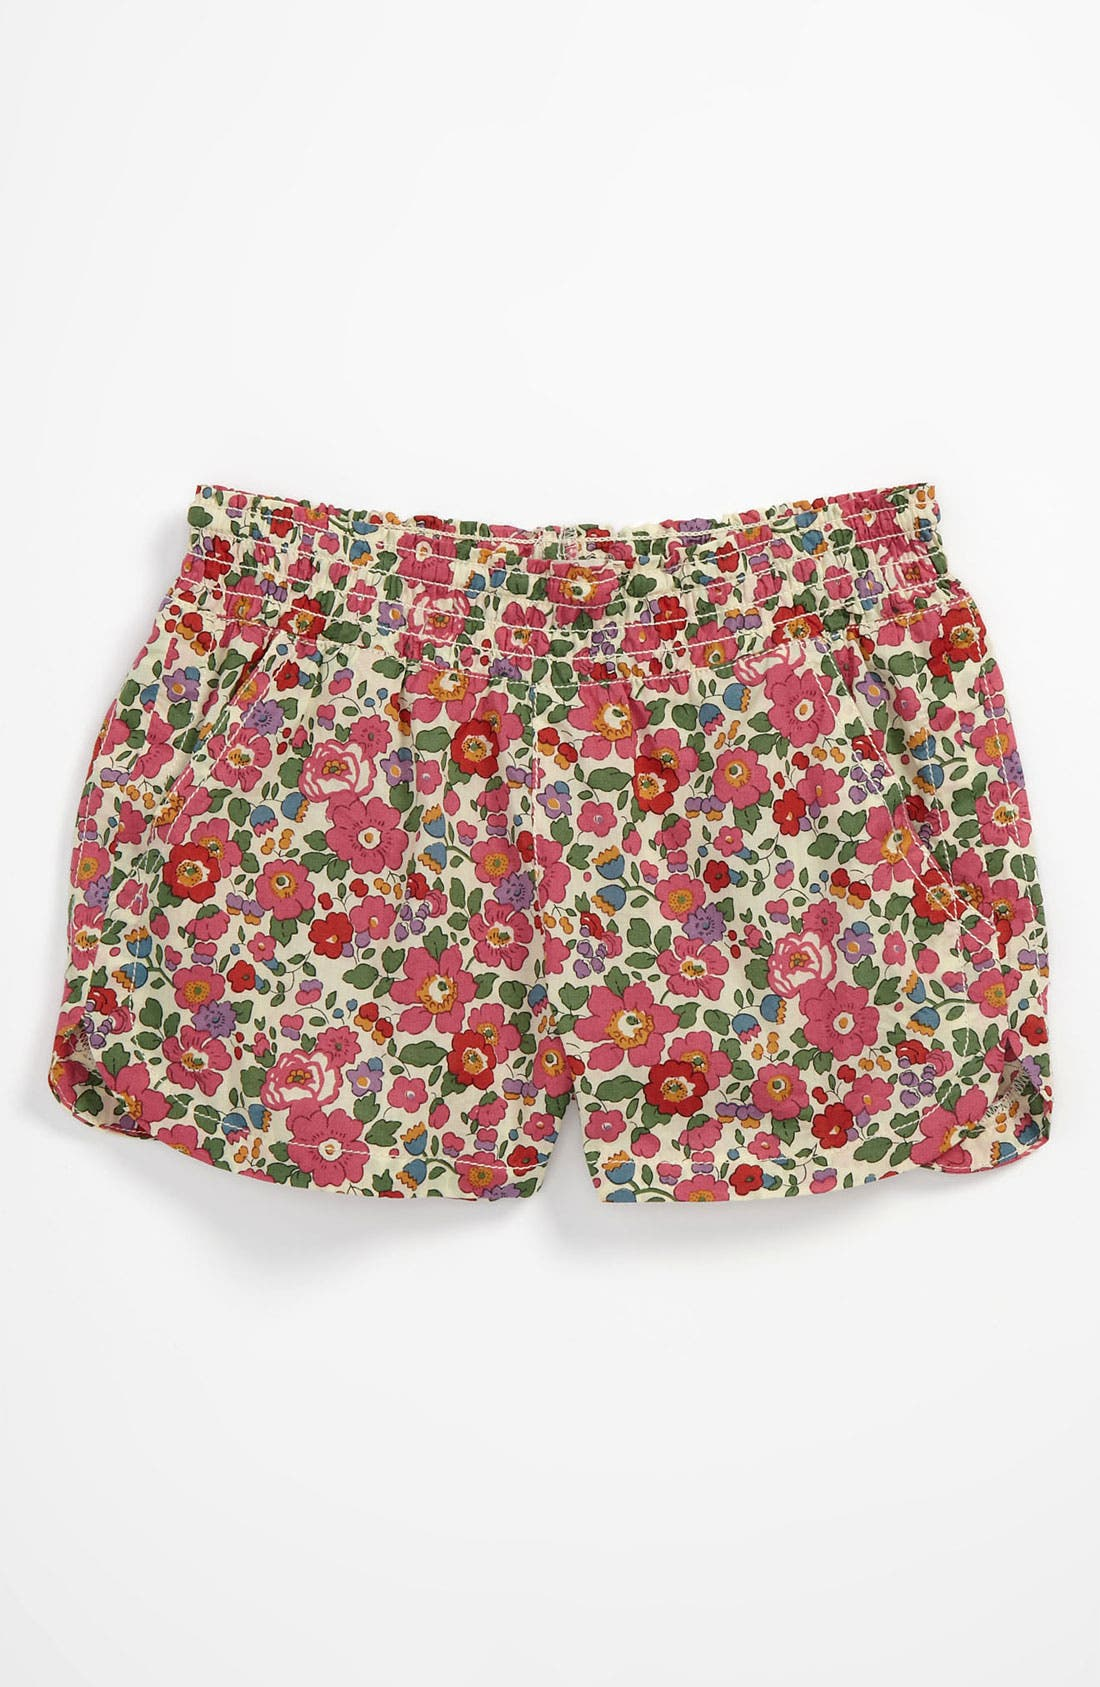 Alternate Image 1 Selected - Peek 'Sara' Shorts (Toddler, Little Girls & Big Girls)